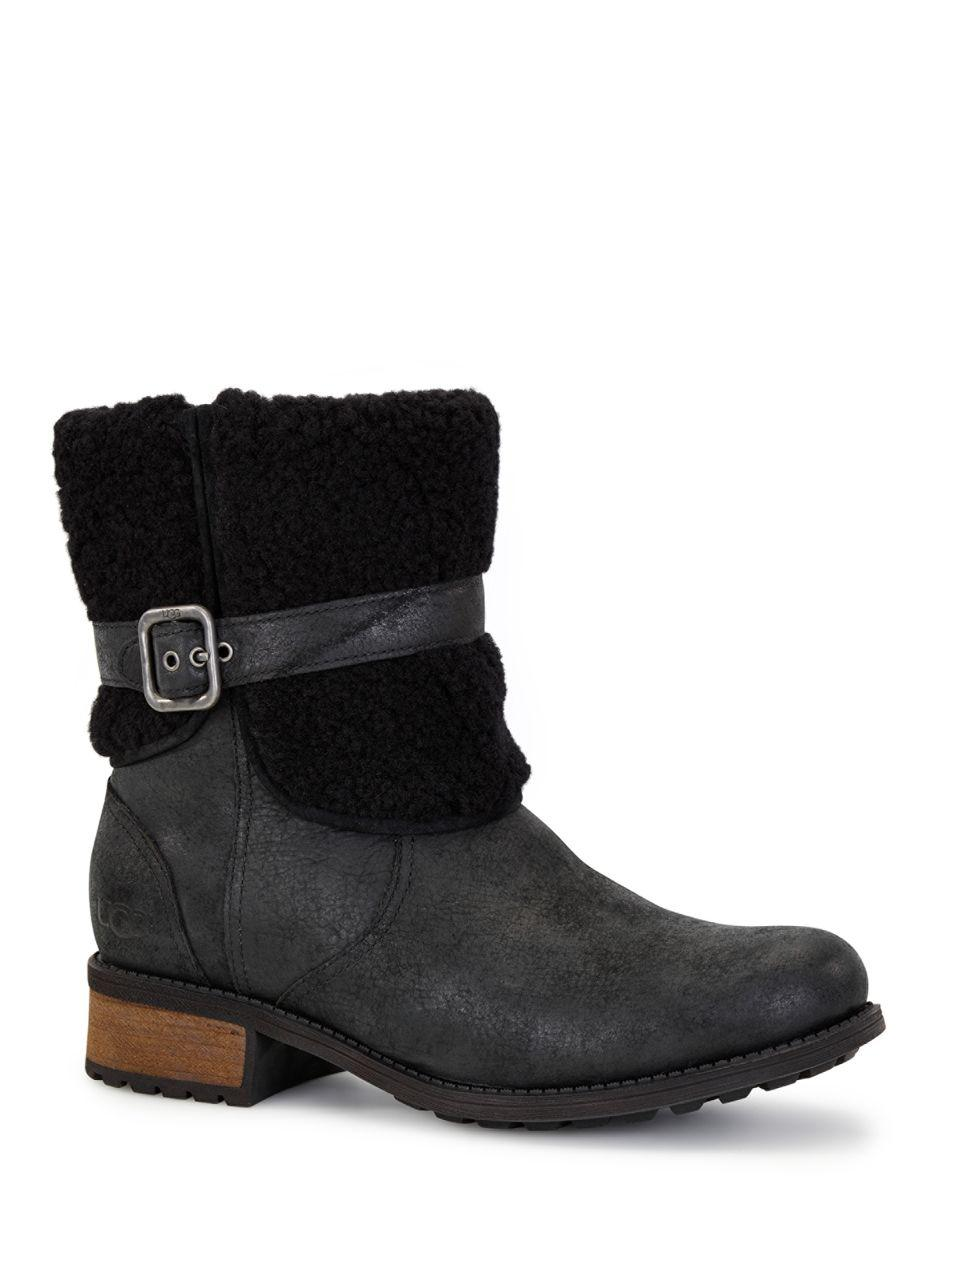 457a38d8b04 UGG Blayre Ii Shearling Cuff Suede Boots in Black - Lyst